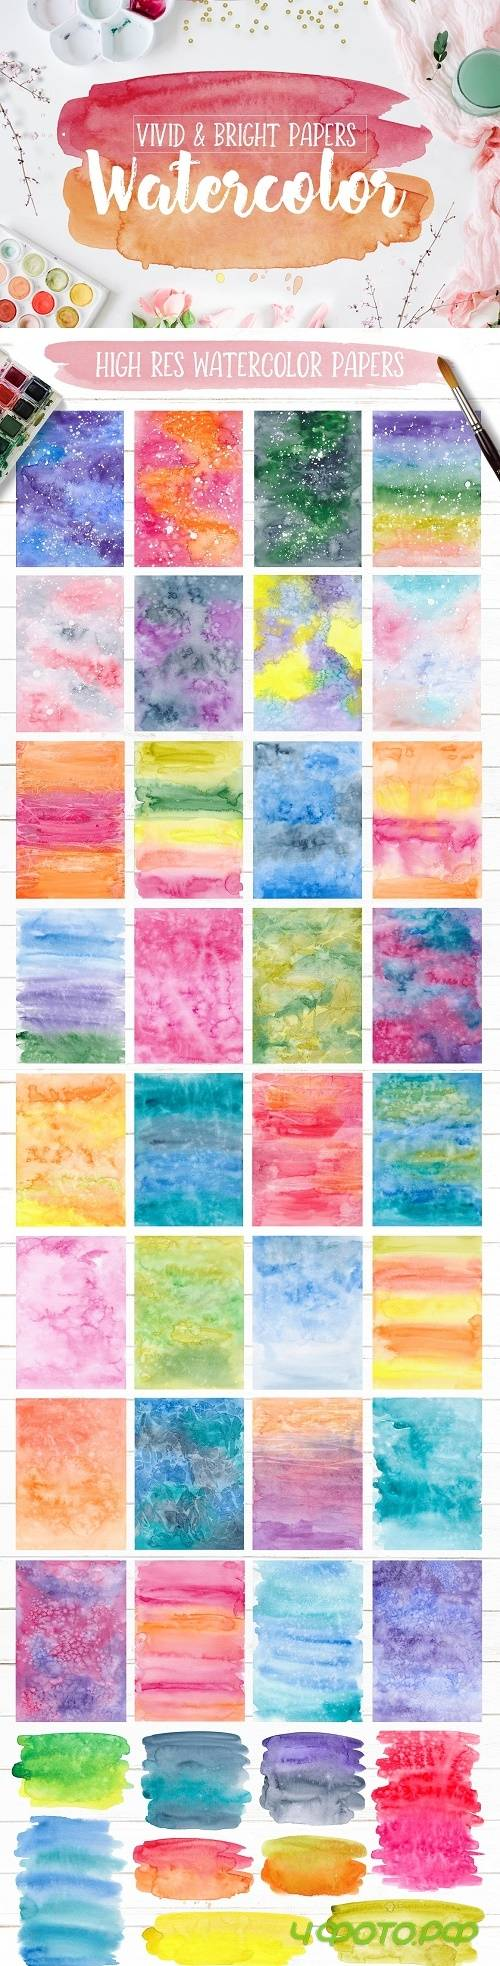 Vivid & Bright Watercolor Textures - 3006263